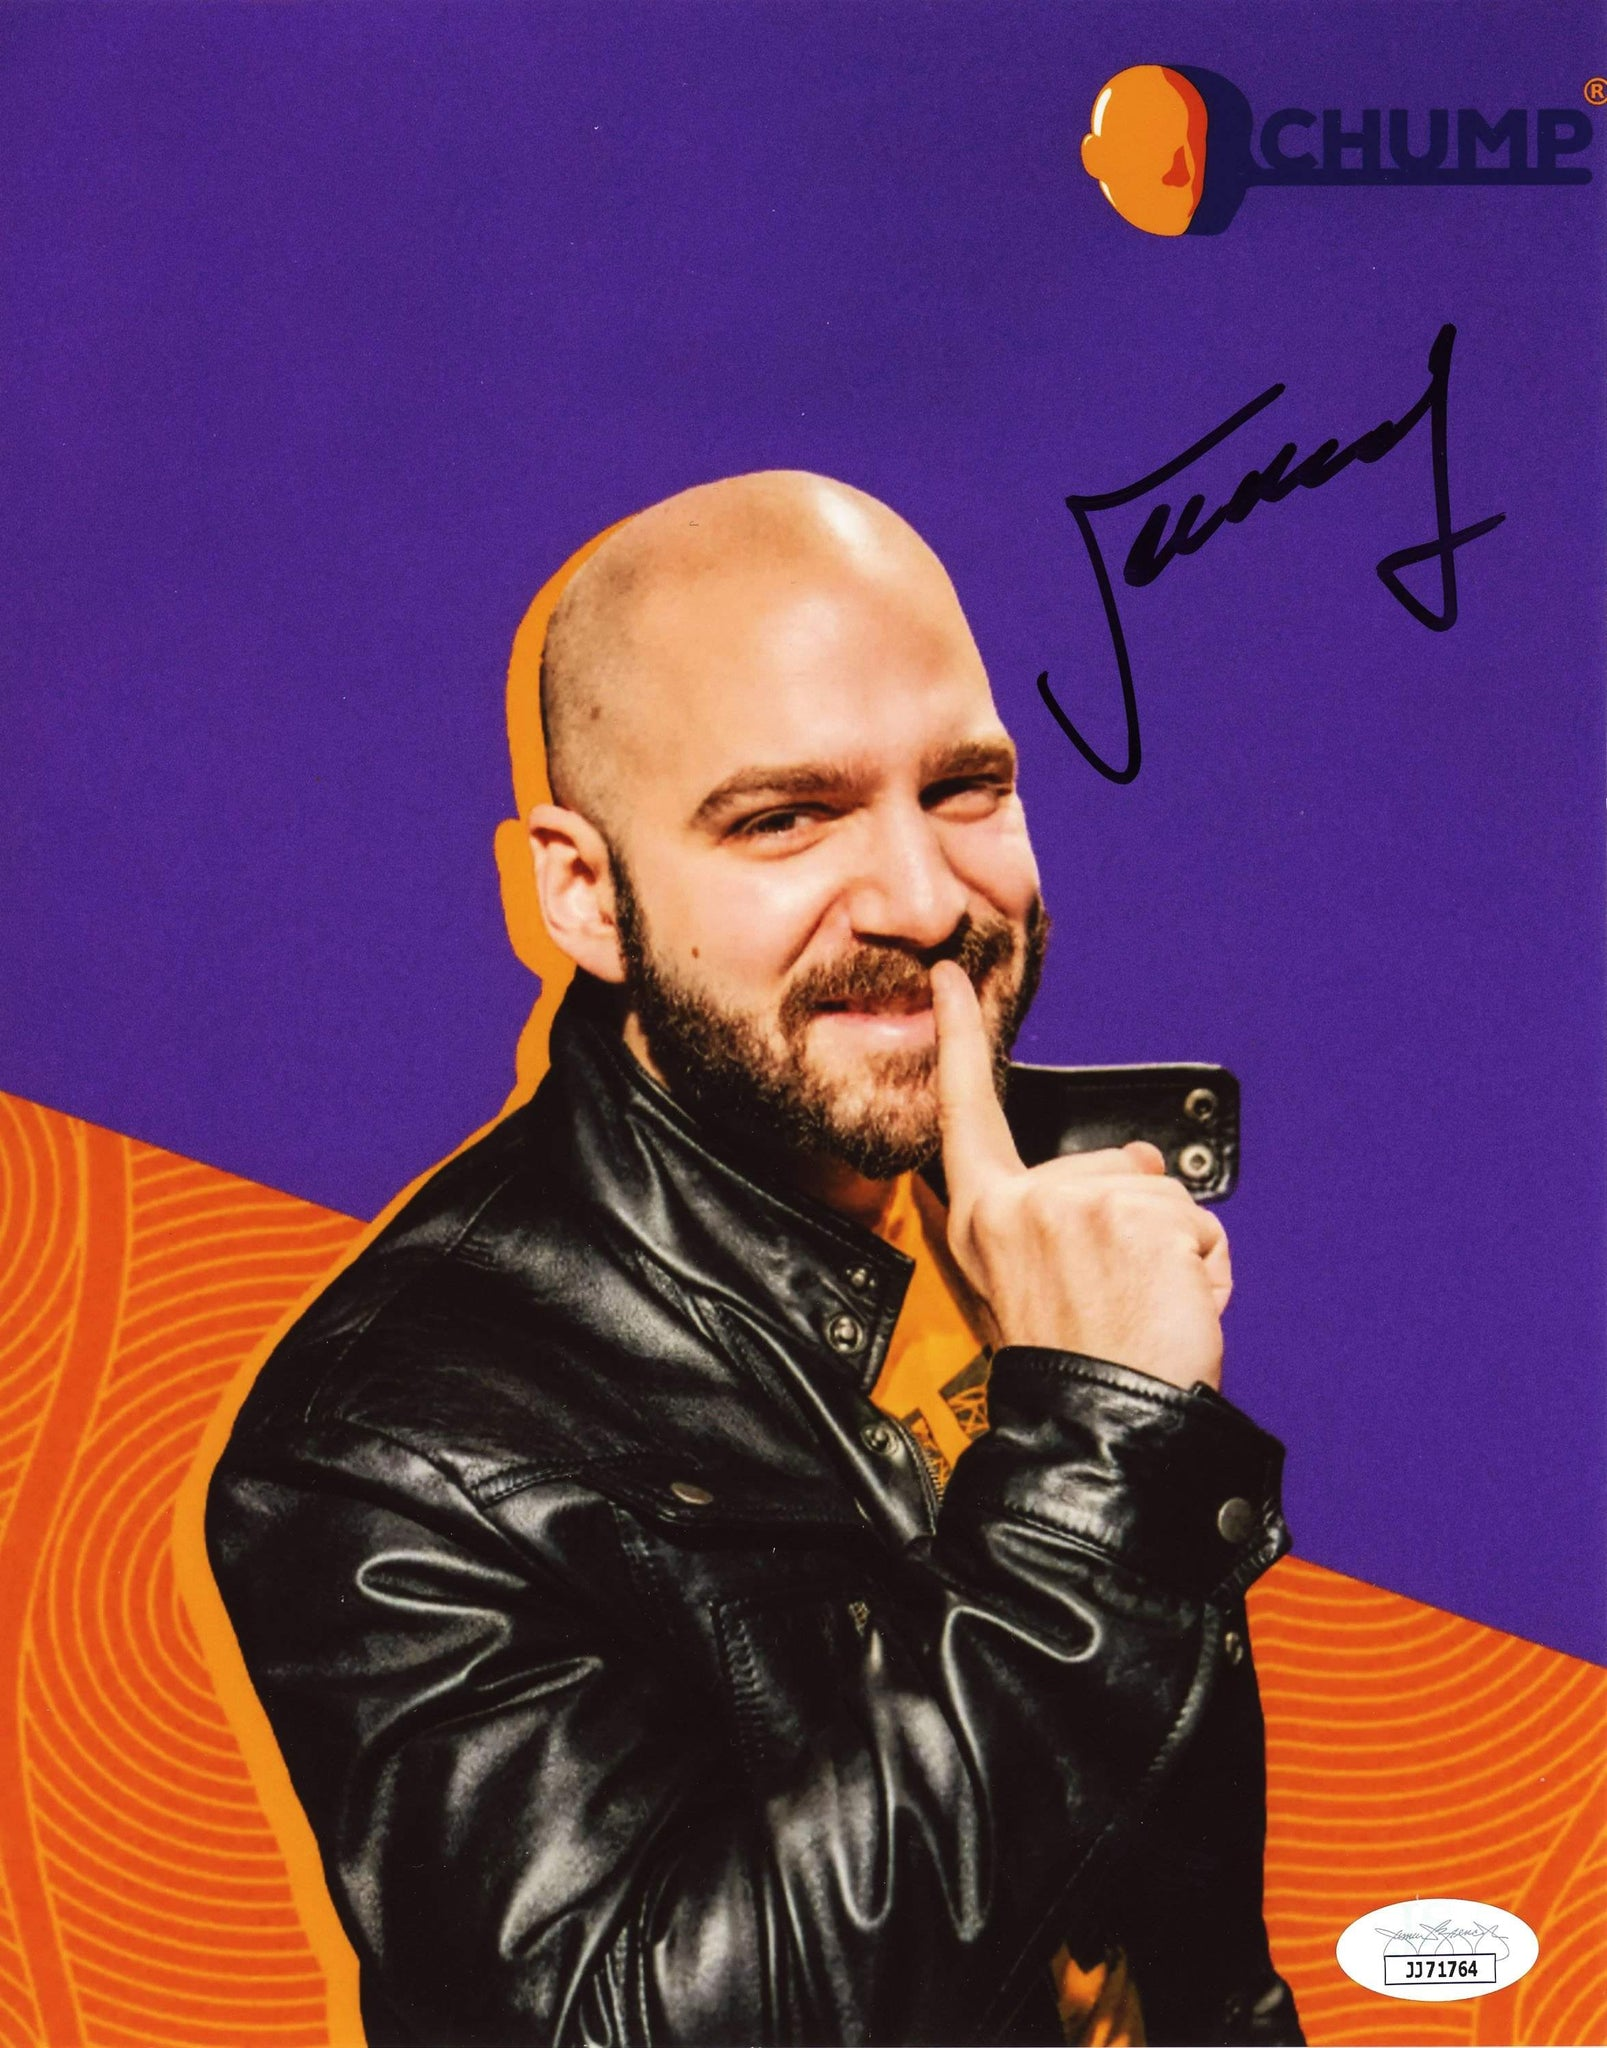 Jeremy Dooley Chump 8x10 Photo Signed Autographed JSA Certified COA GalaxyCon